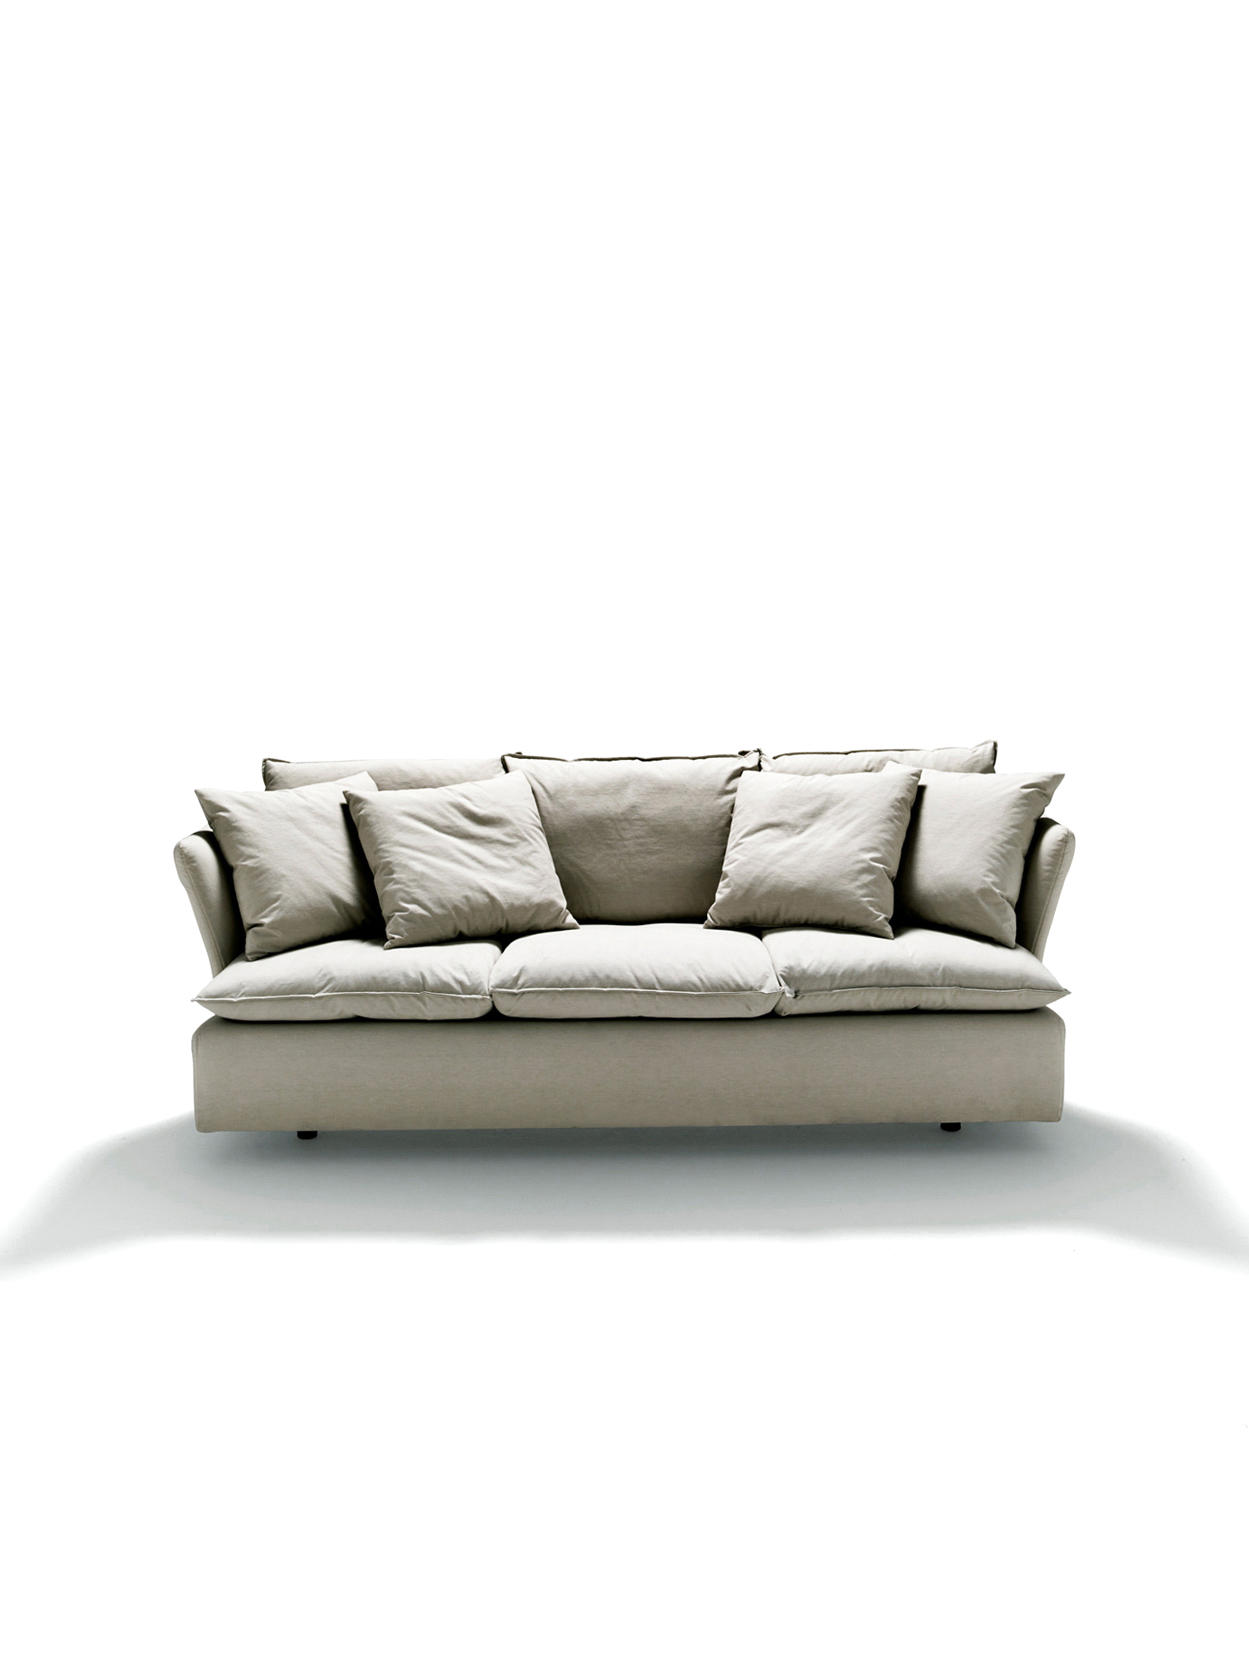 PILLOW - Lounge sofas from De Padova | Architonic